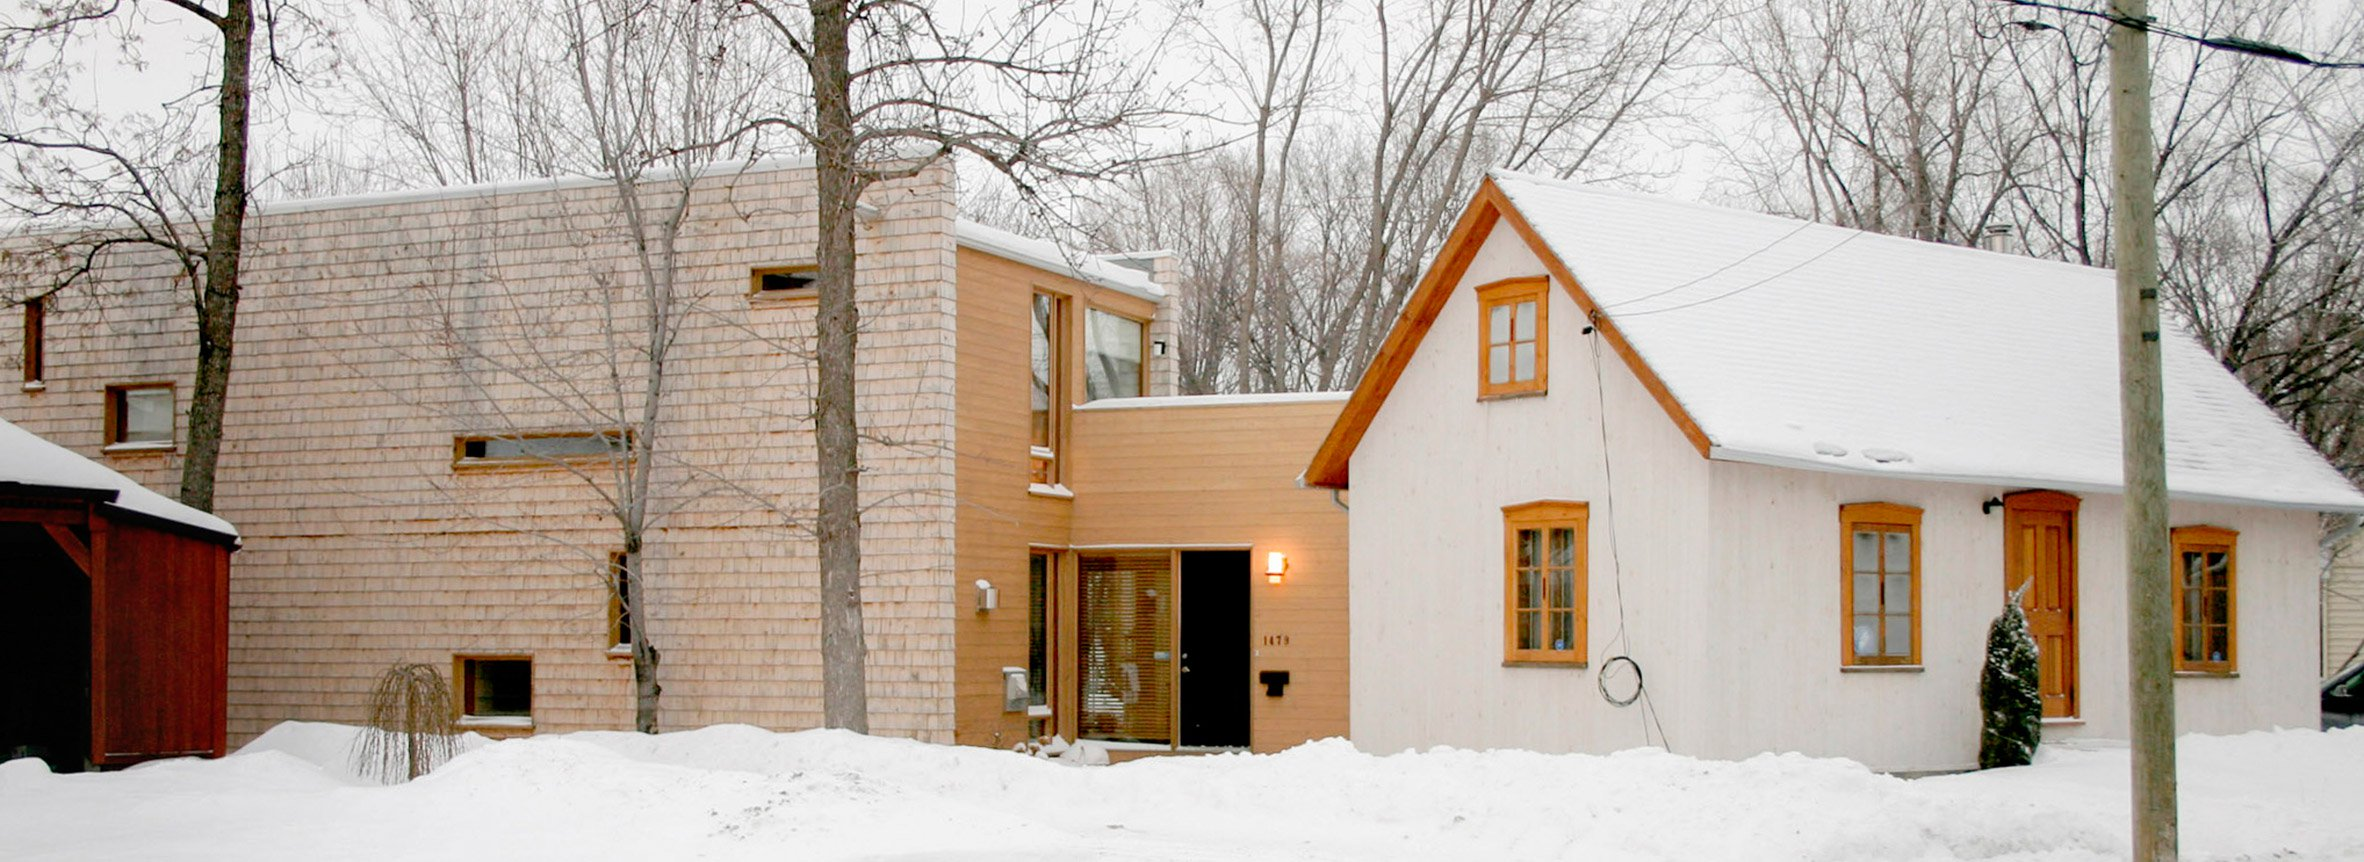 Atelier Pierre Thibault expands historic Montreal home to create writer's studio